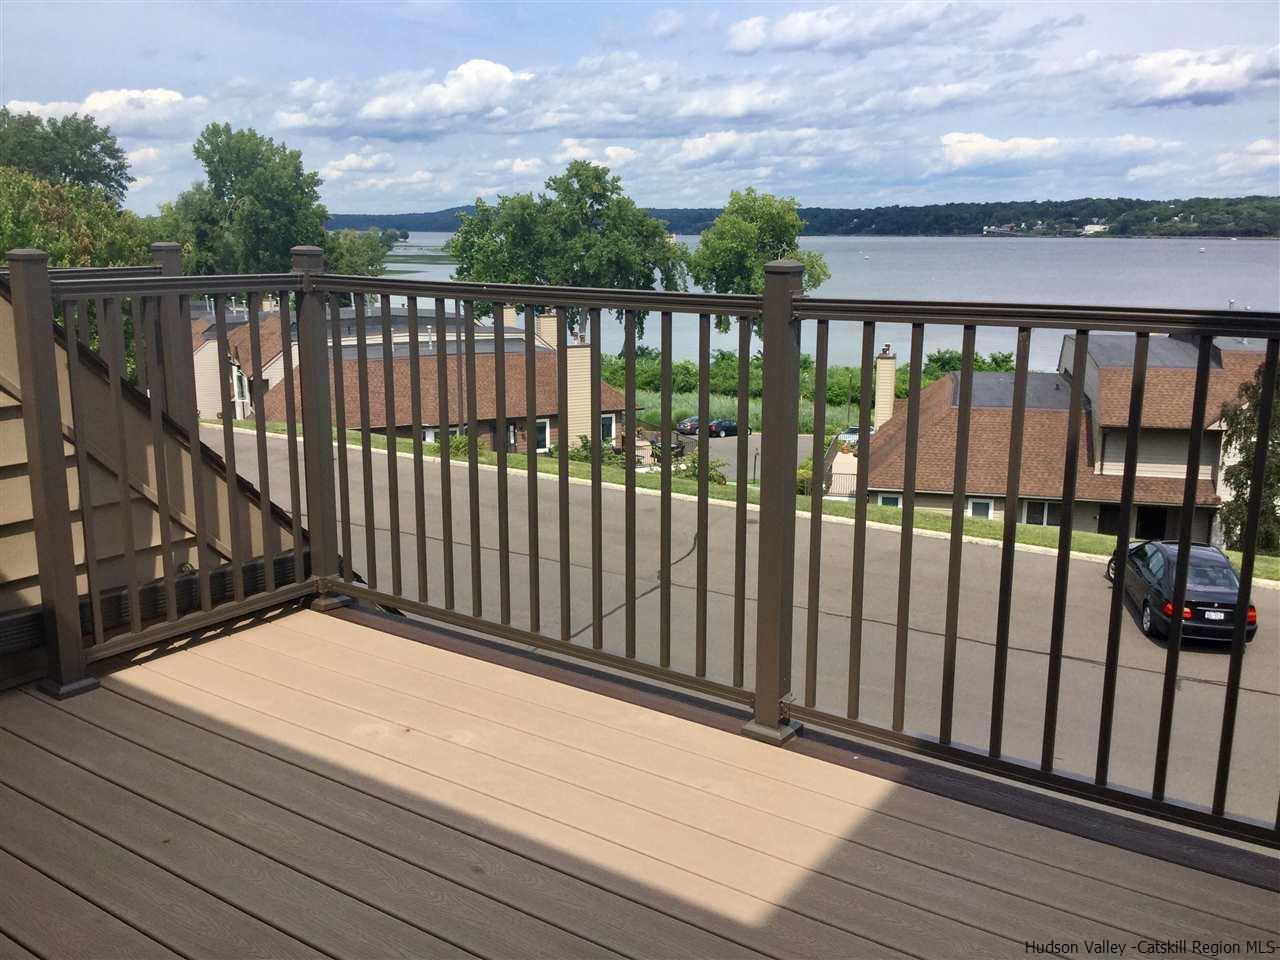 Your PRIVATE DECK Overlooks the Hudson River Relax or dine and Enjoy the View ~ Peace & Quiet